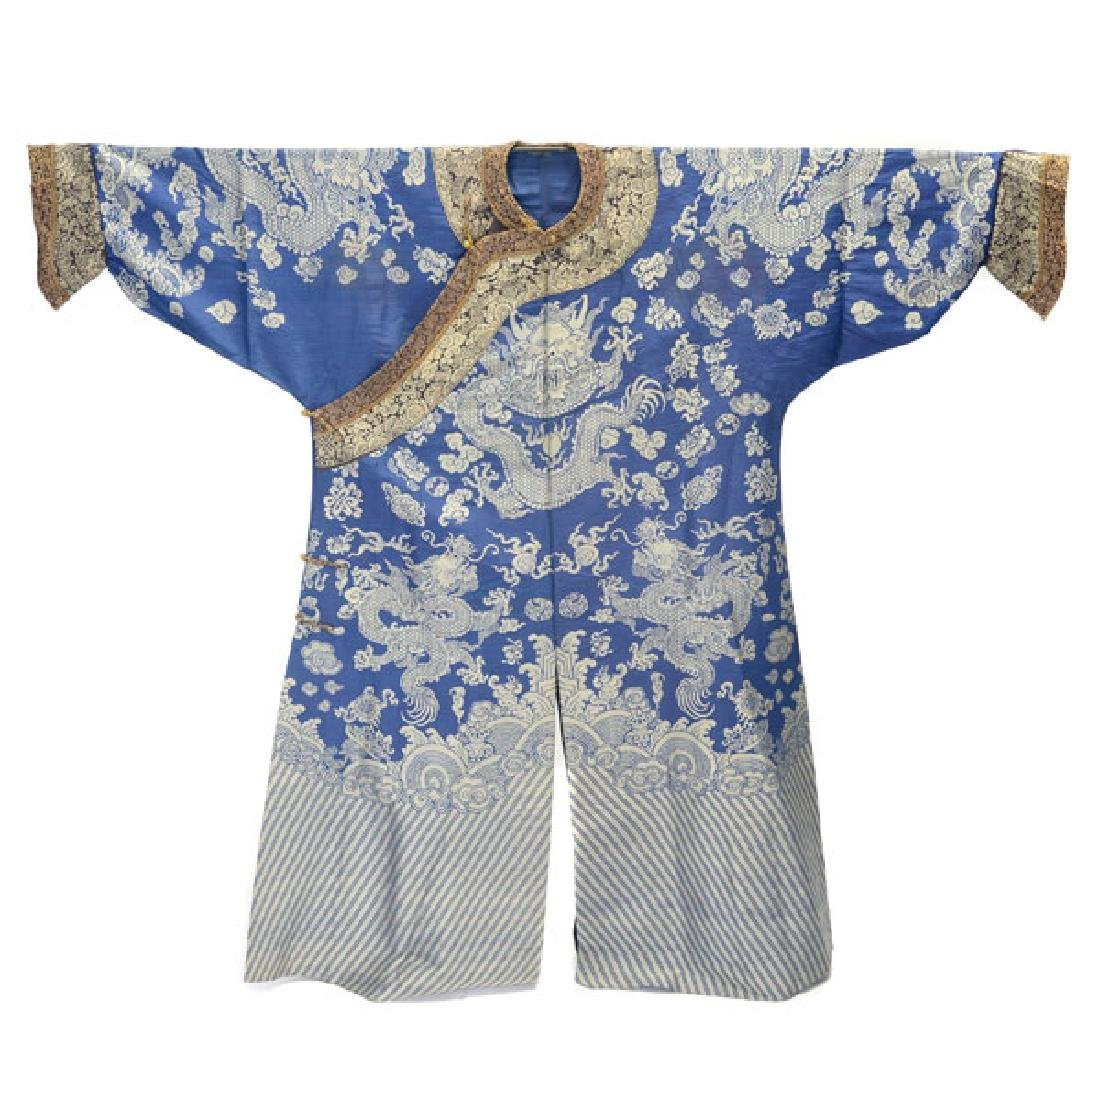 A Brocade Woven Blue Ground 'Dragon' Robe, Late 19th